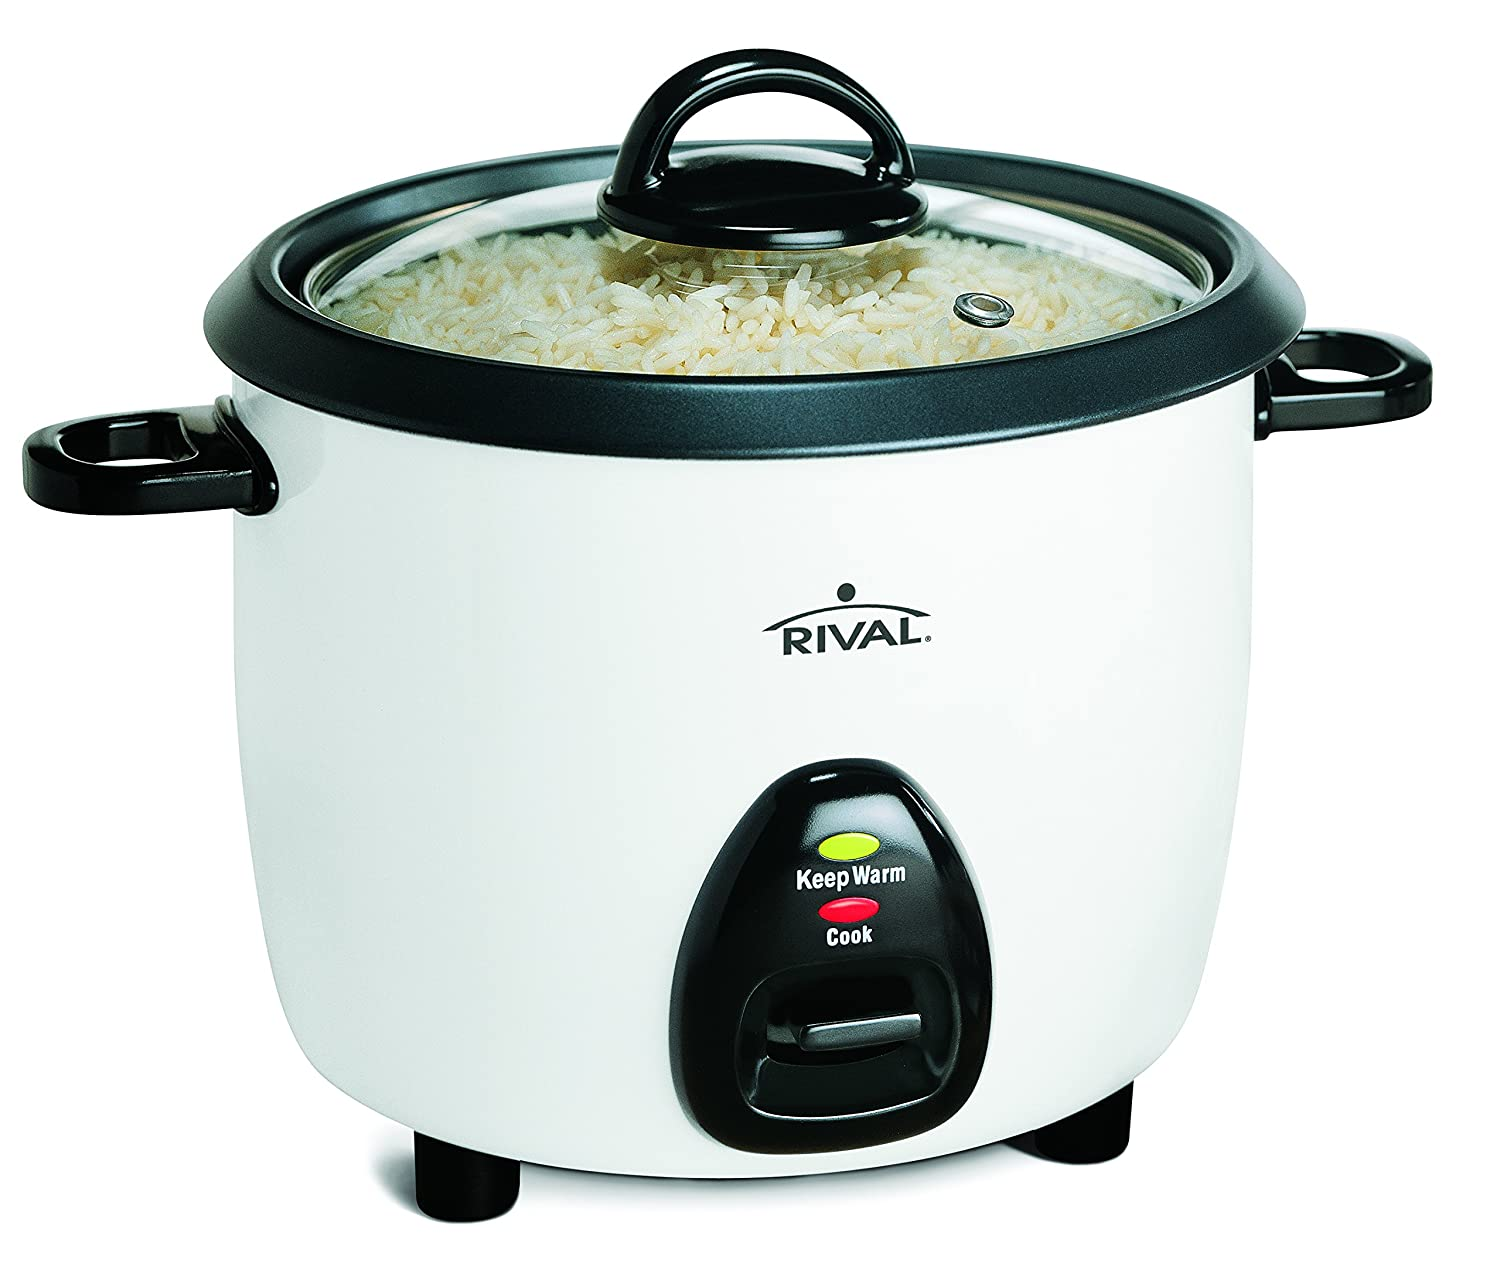 Rival 10-Cup Rice Cooker with Steamer Basket, White/Black (RC101)